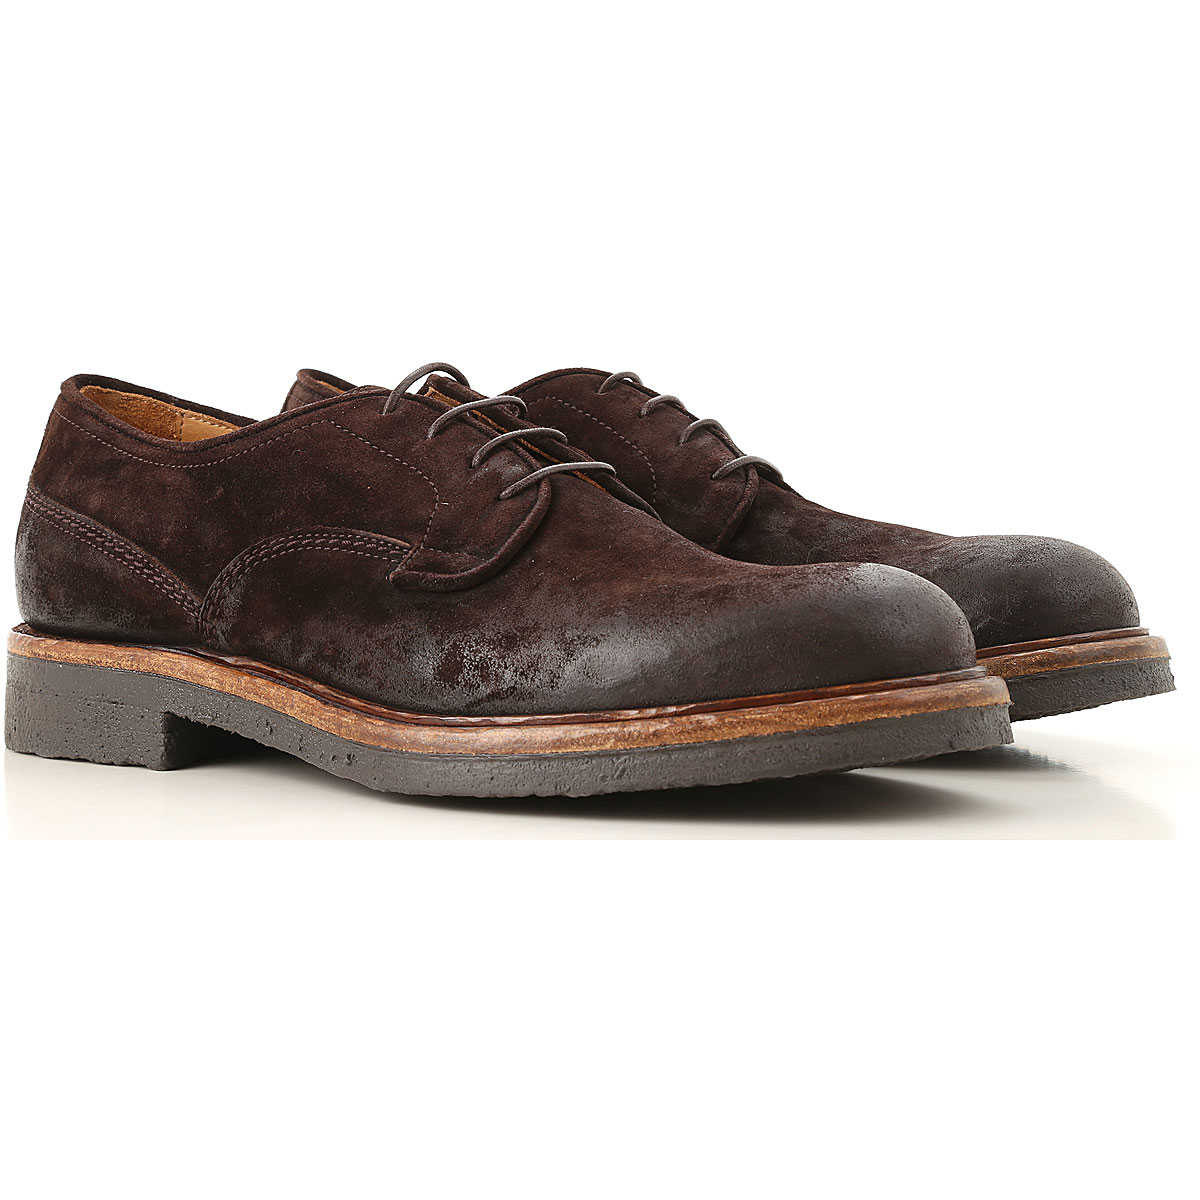 Corvari Lace Up Shoes for Men Oxfords Derbies and Brogues On Sale in Outlet USA - GOOFASH